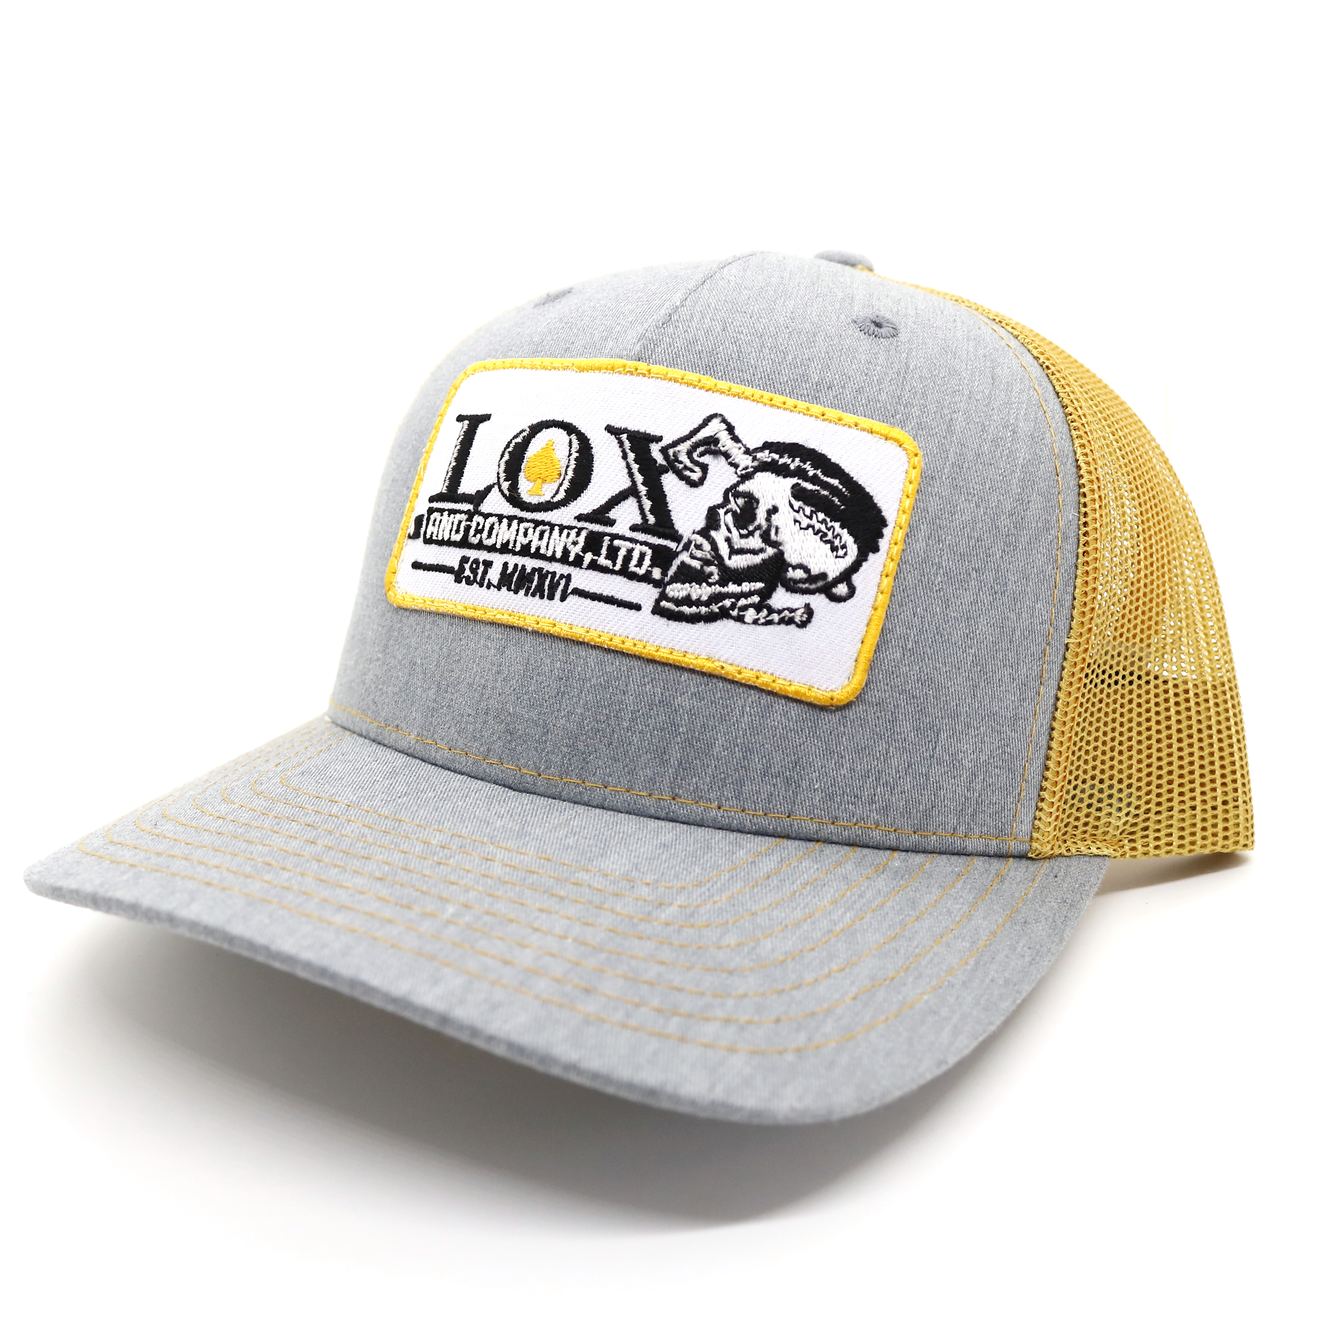 Lox and Company Grey and Tan Trucker Hat